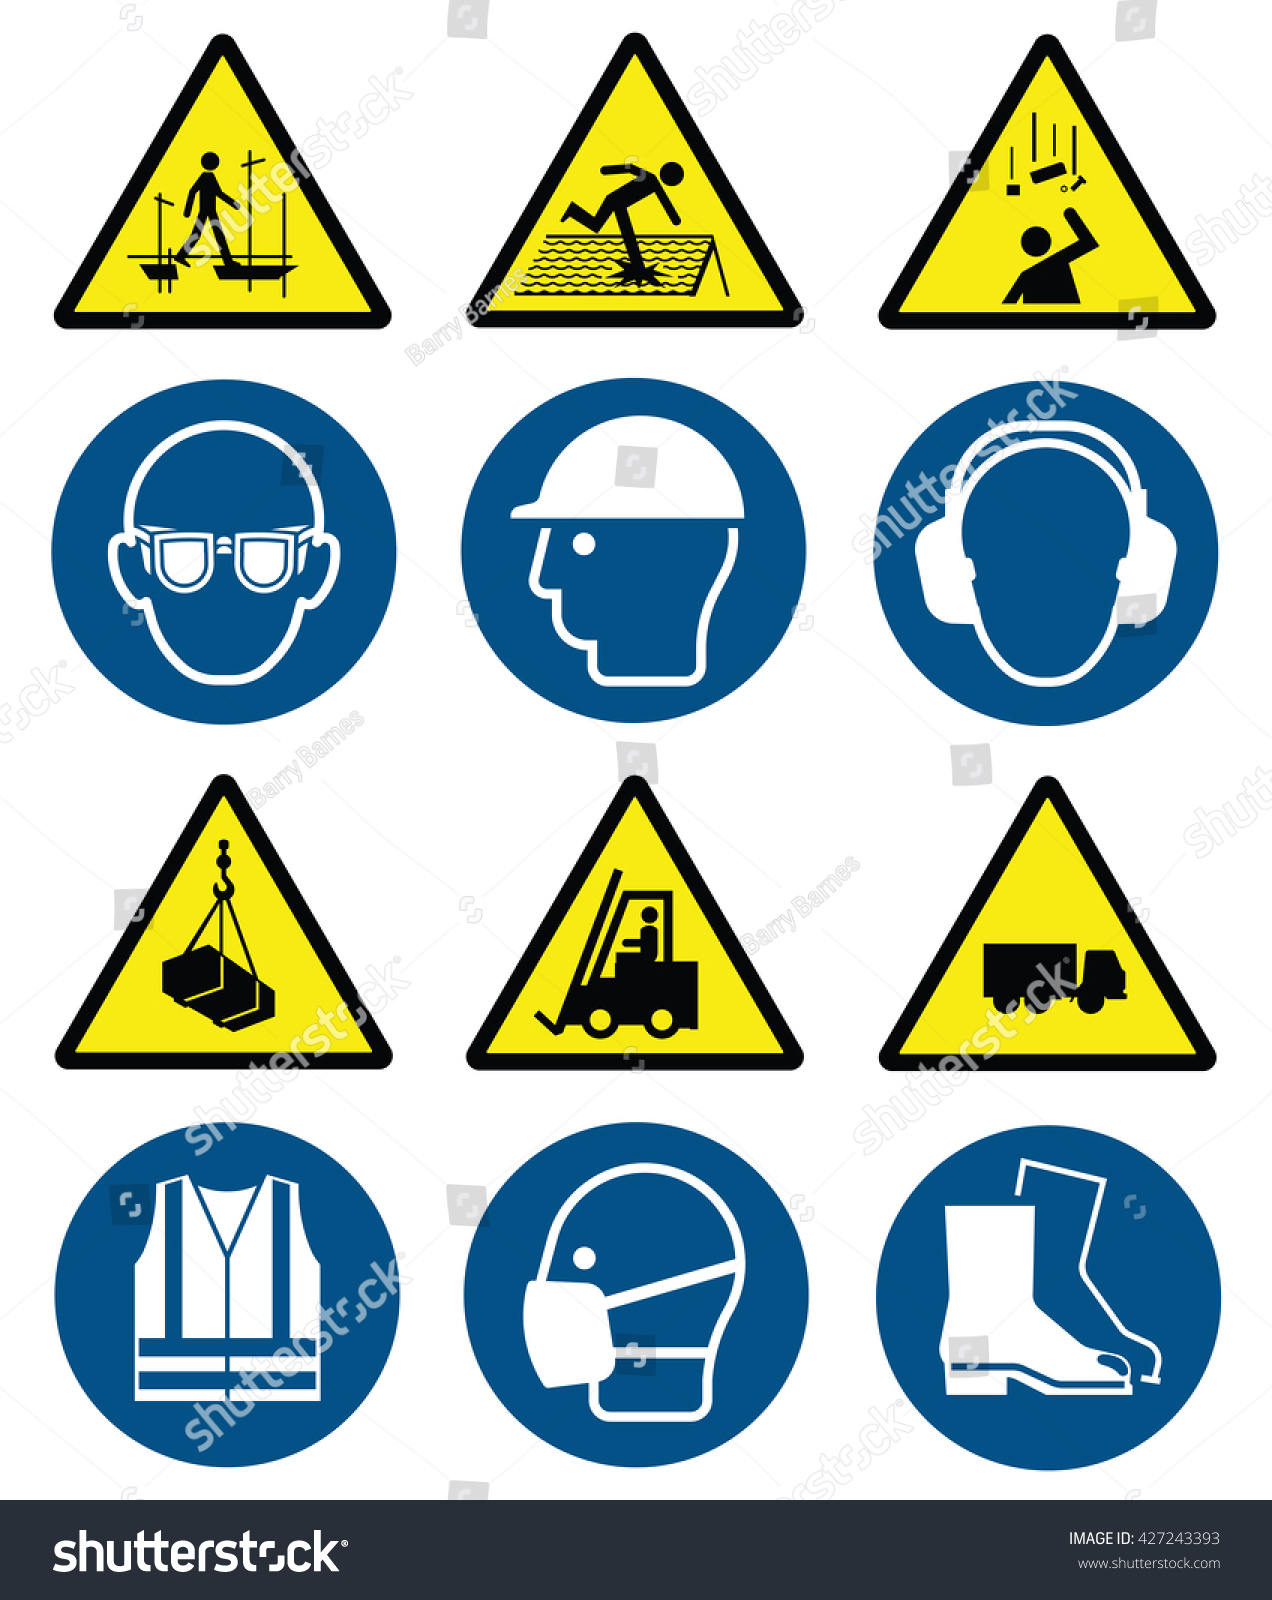 Mandatory construction manufacturing engineering health safety mandatory construction manufacturing and engineering health and safety signs to current british standards and hazard warning biocorpaavc